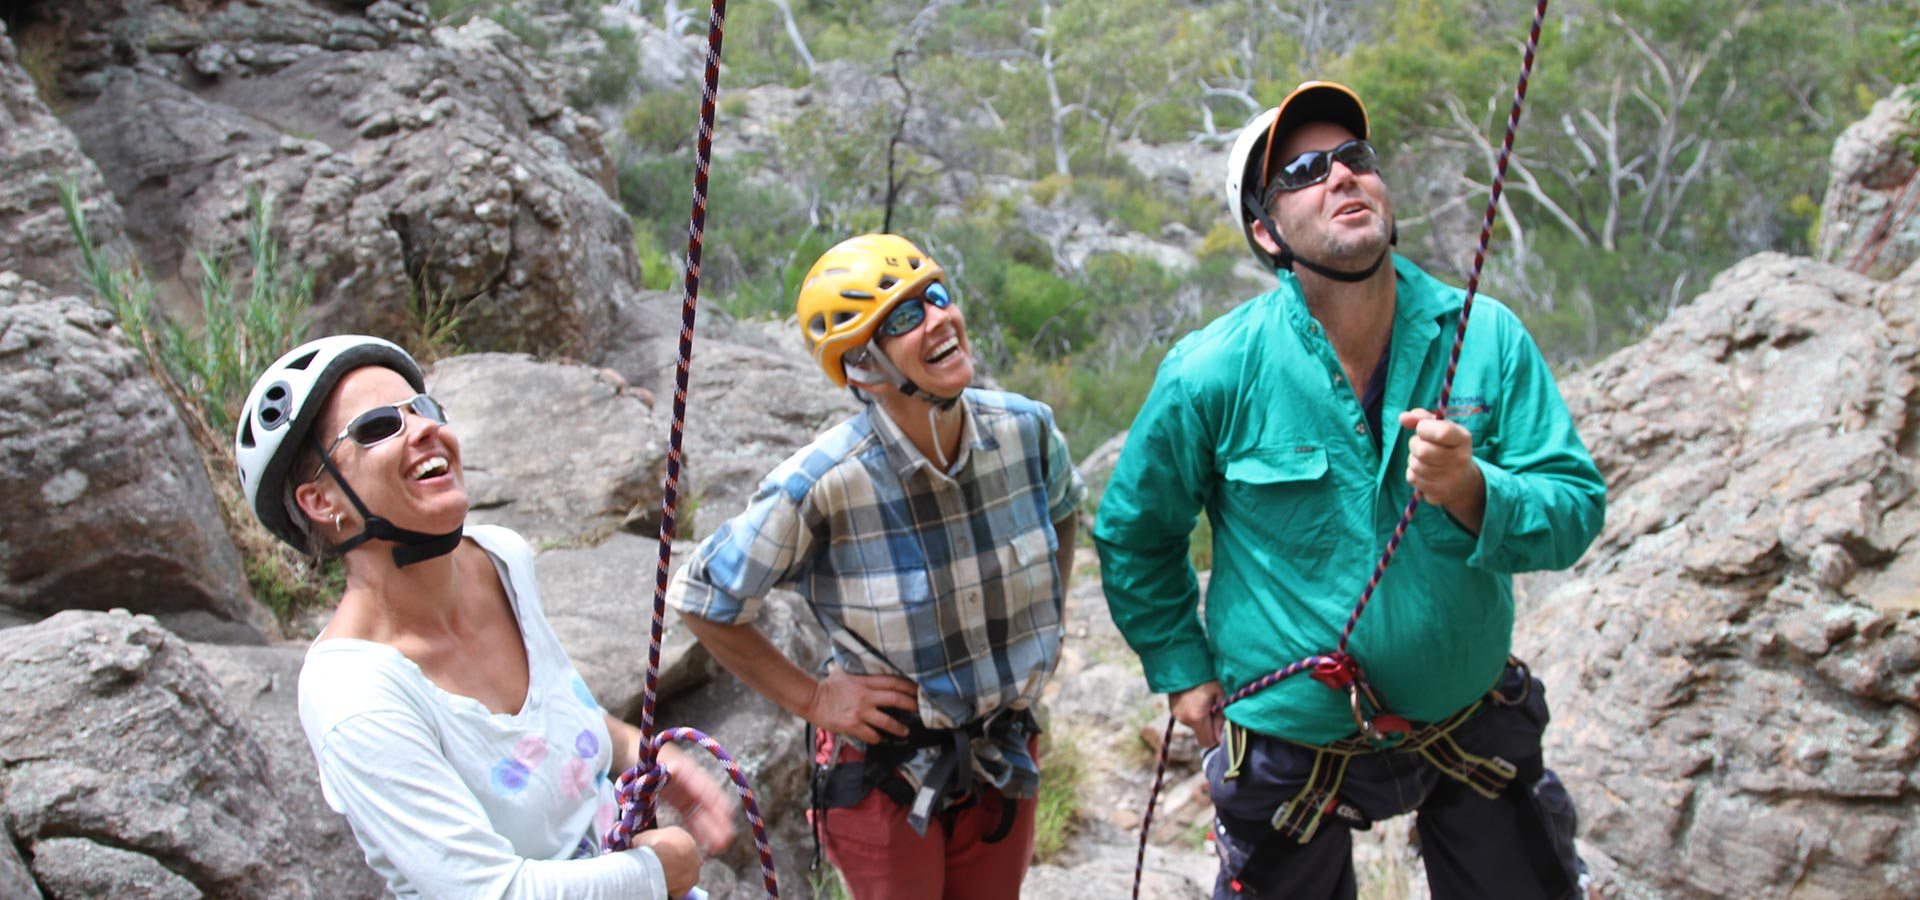 Rock Climbing for beginners image